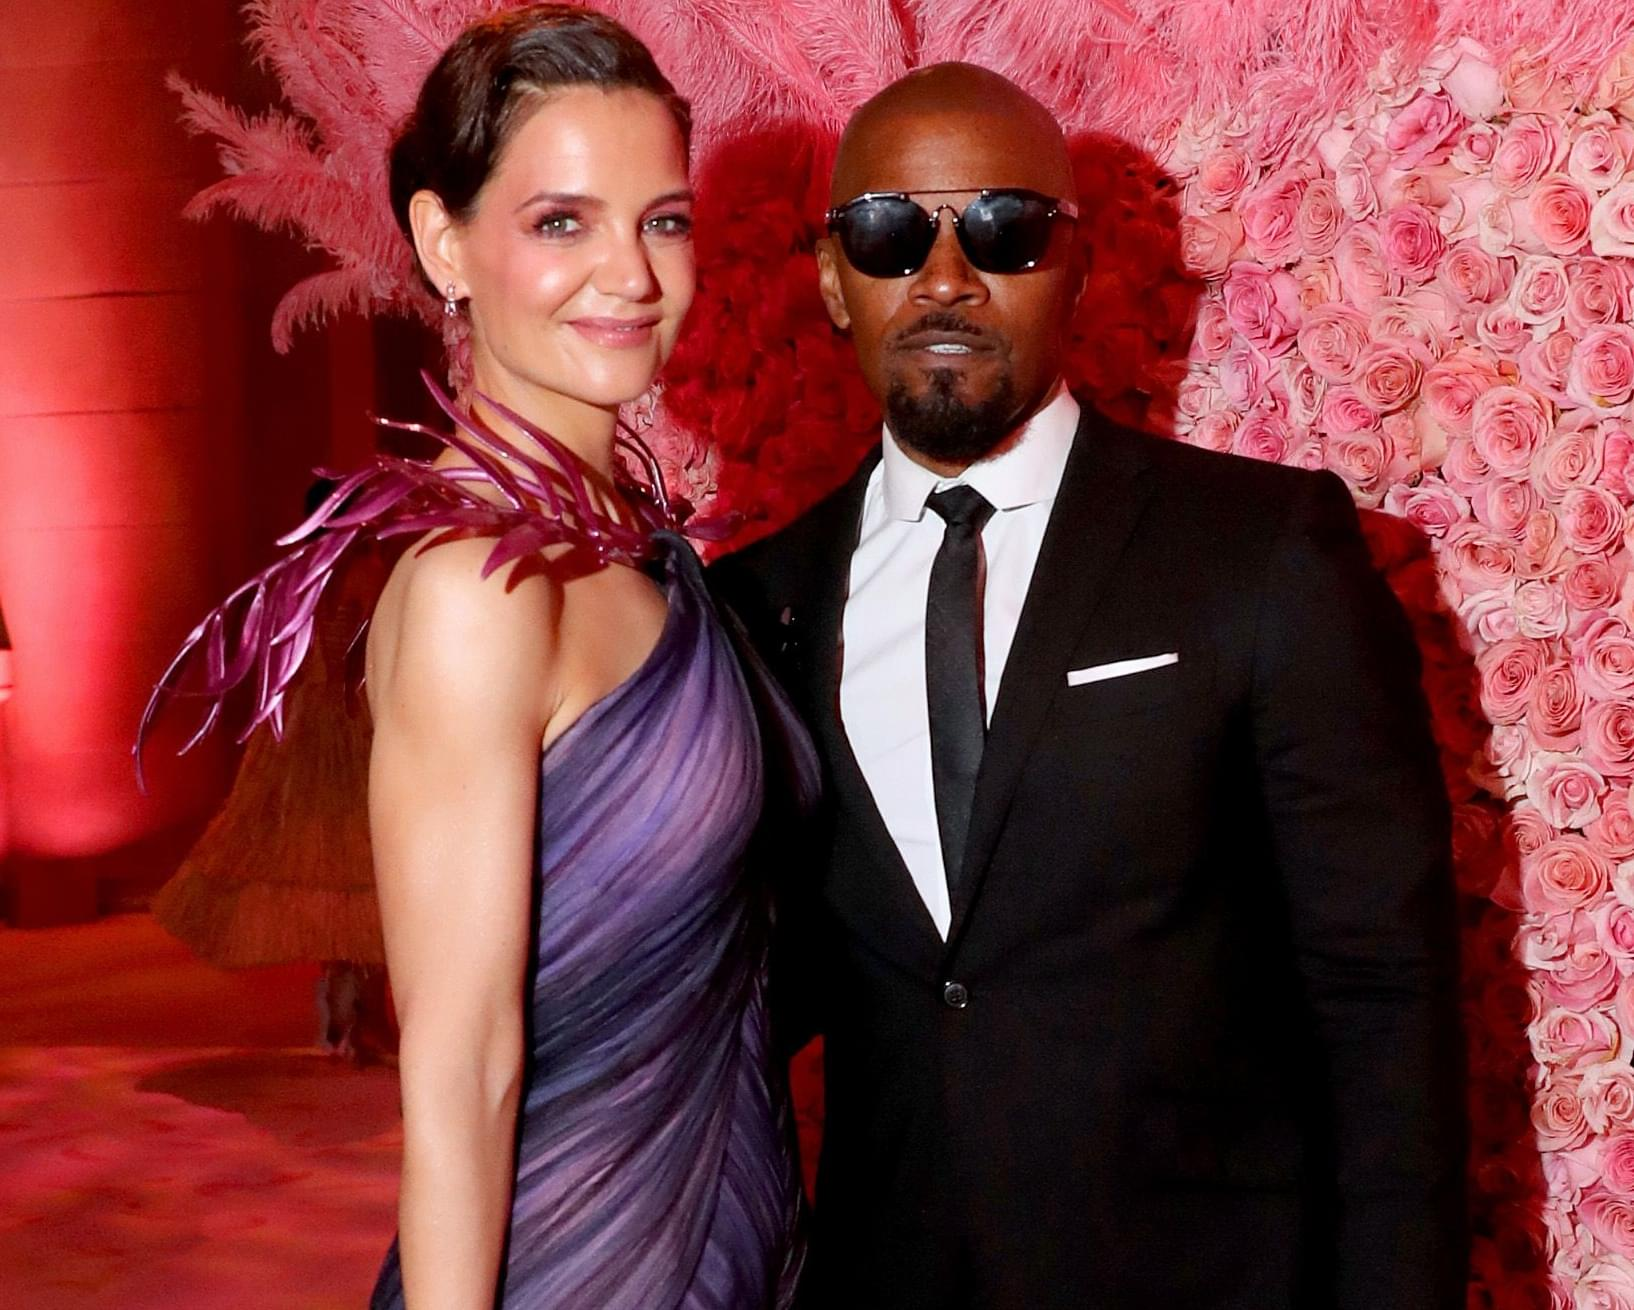 Katie Holmes & Jamie Foxx have split up